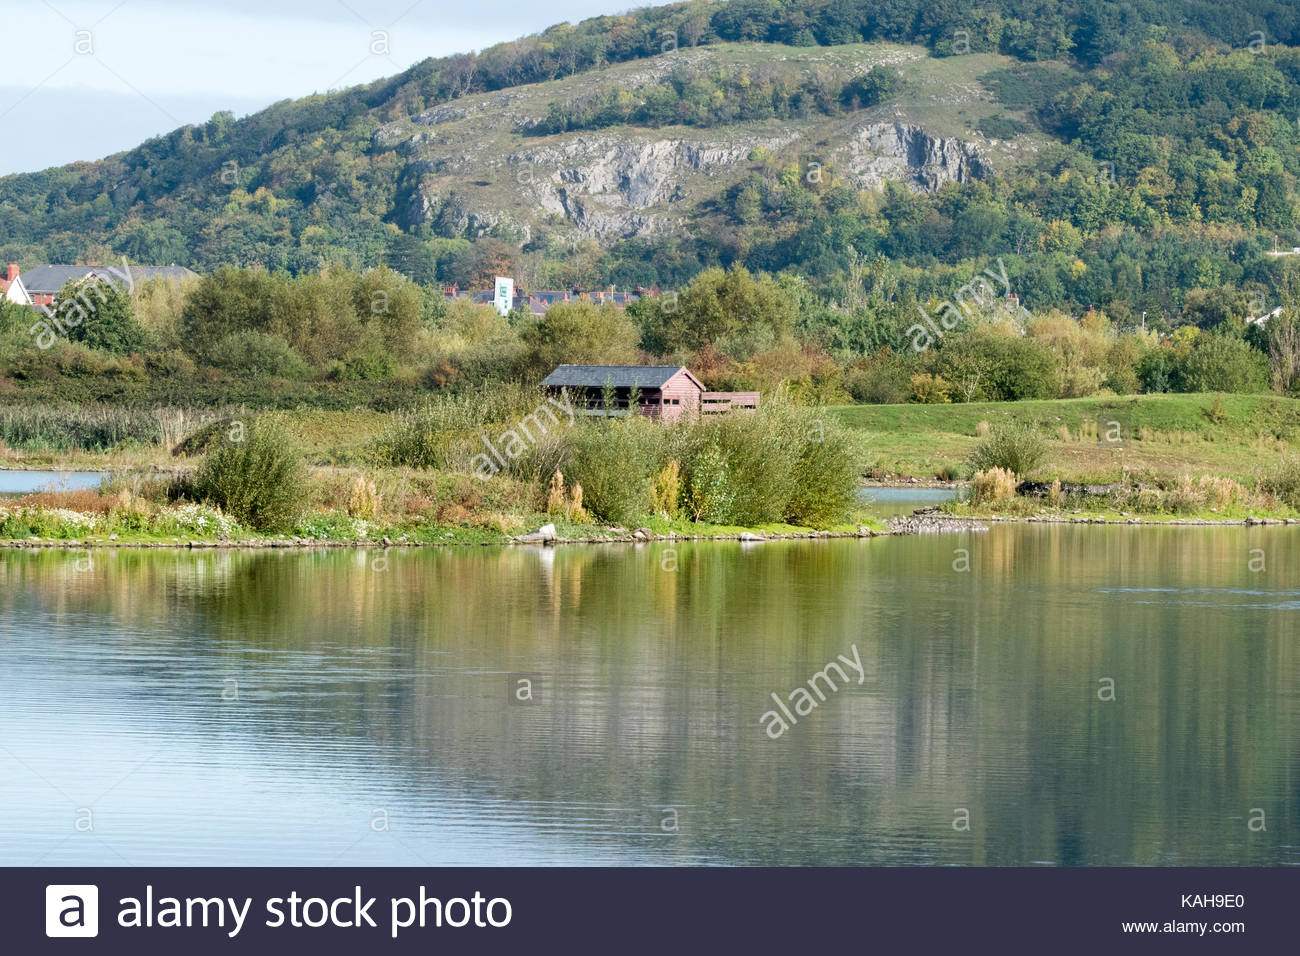 Conwy Nature Reserve Llandudno Junction, Rspb Conwy Nature Reserve Stock Photos & Rspb Conwy Nature Reserve ...